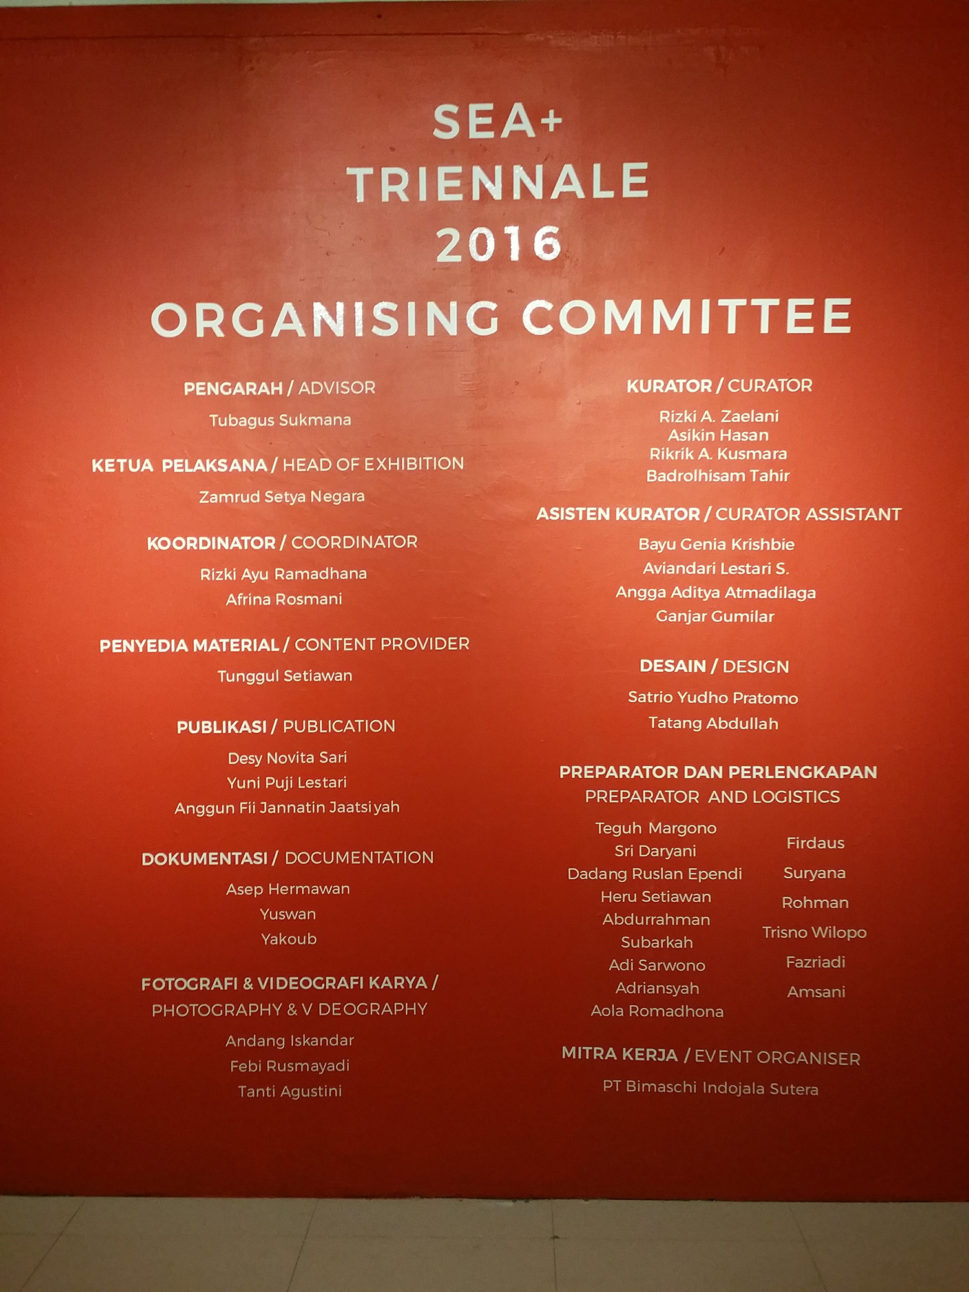 SEA+ Triennale organizing committee !